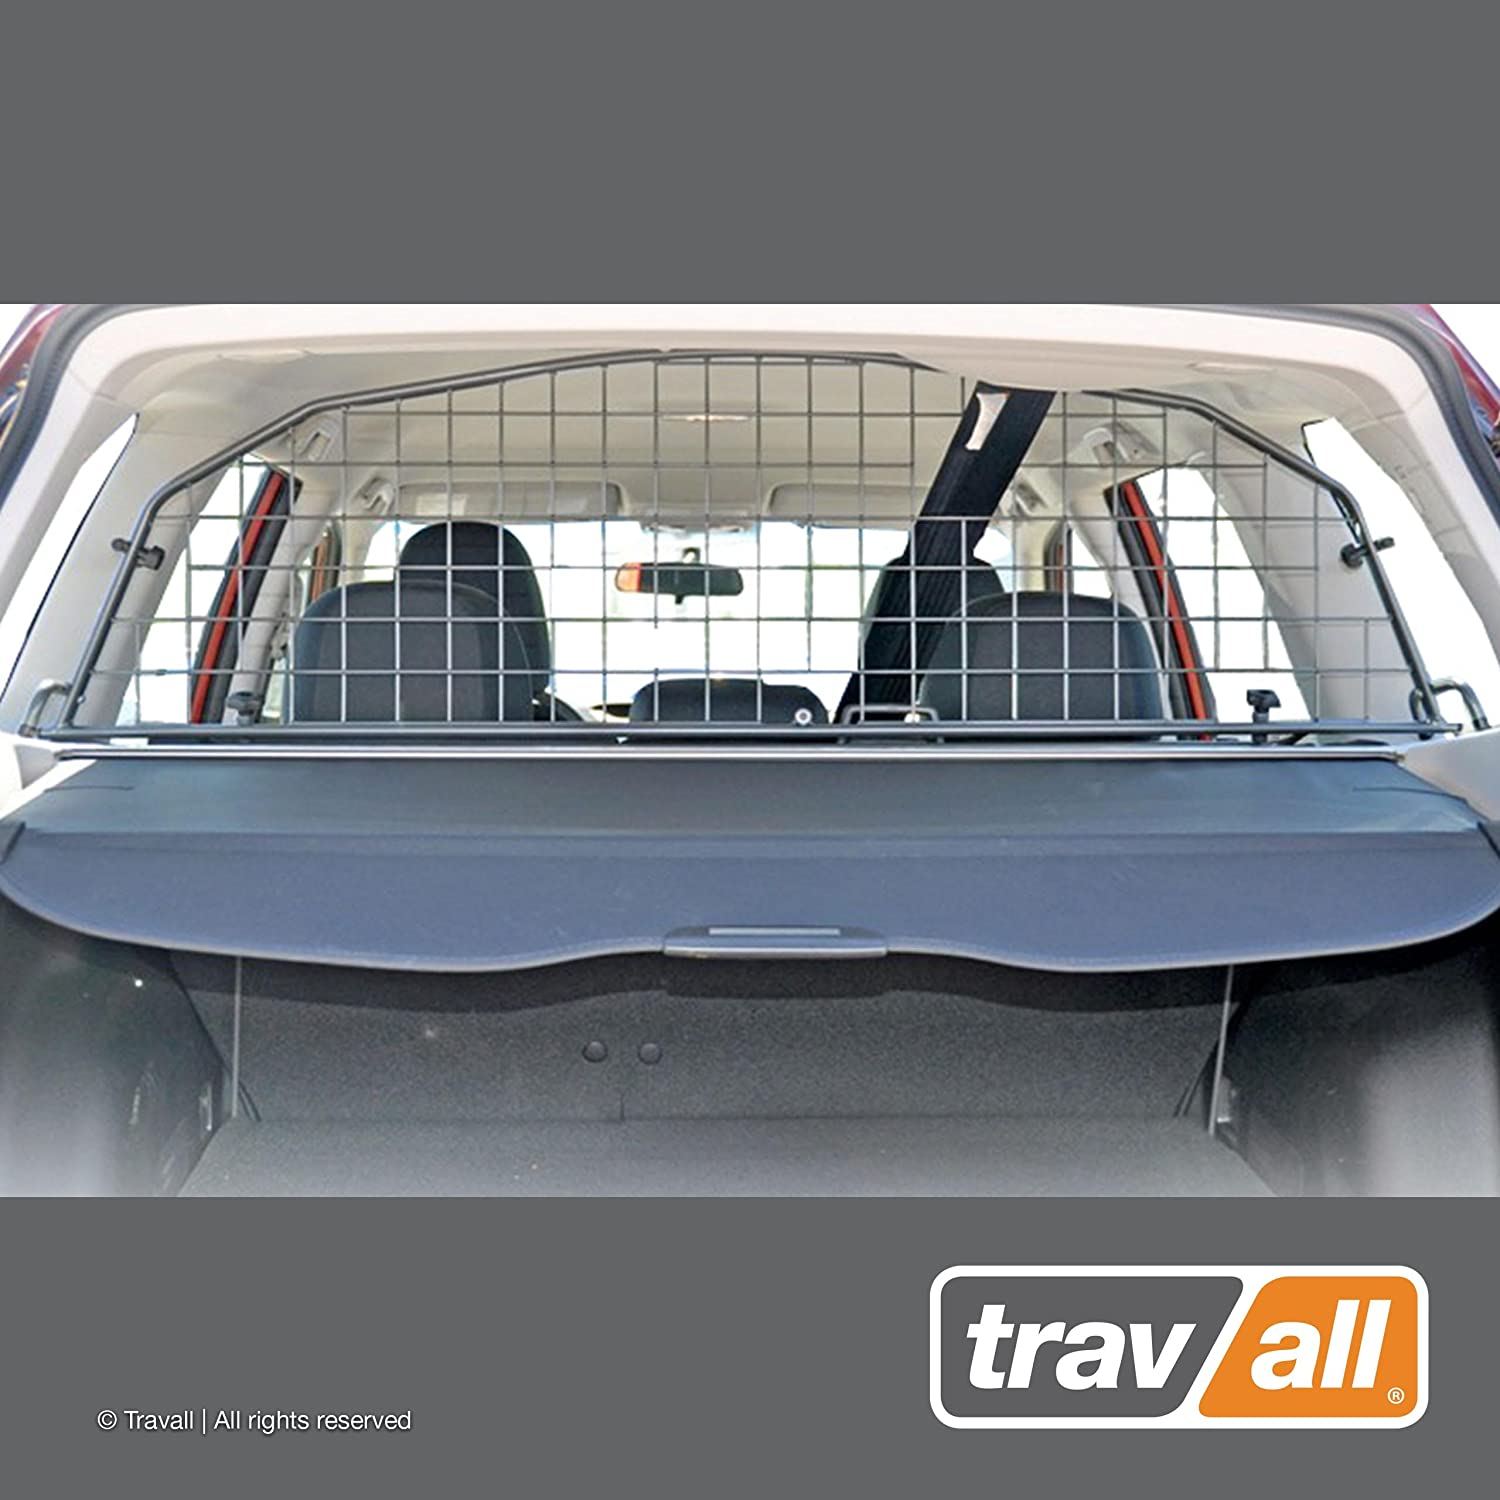 Travall Guard Compatible with Subaru Forester Without Sunroof 2008-2012 TDG1181 – Rattle-Free Steel Pet Barrier